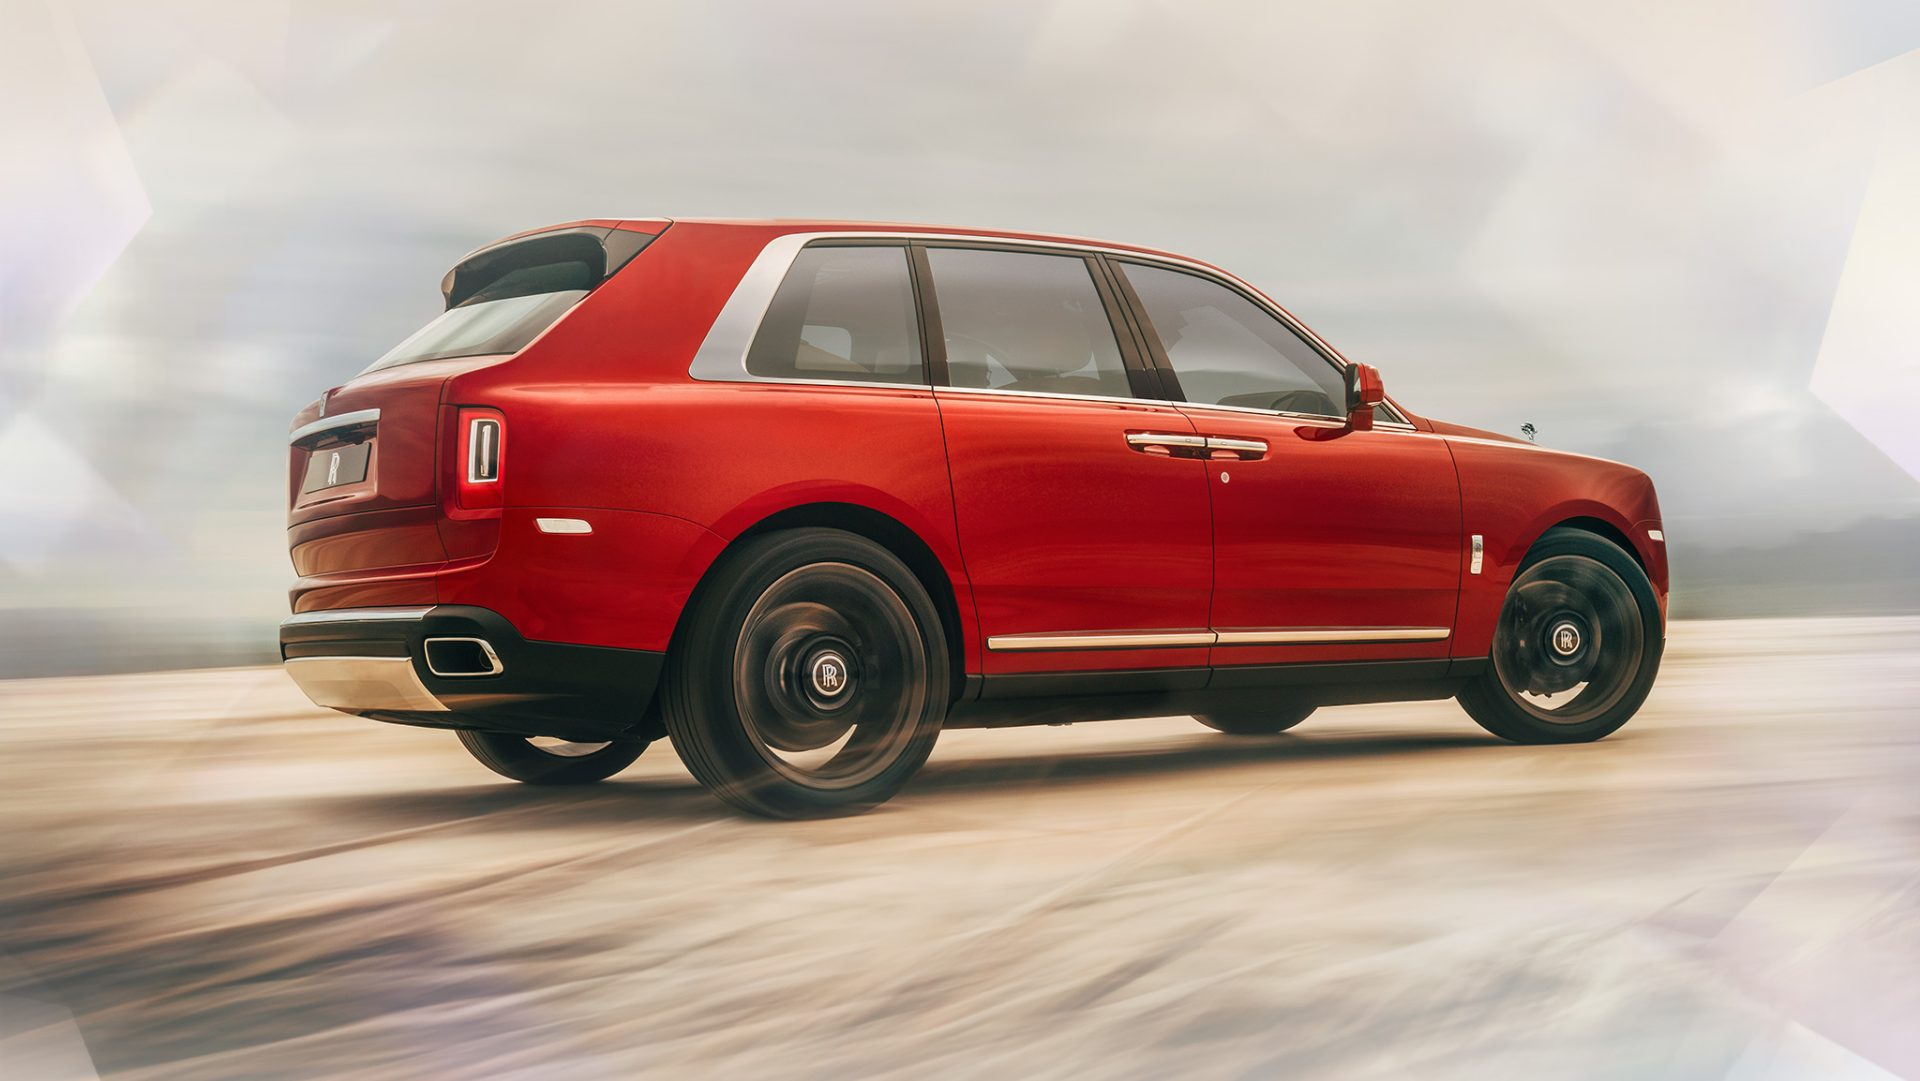 Rolls Royce Cullinan Is The New Super Luxurious Suv